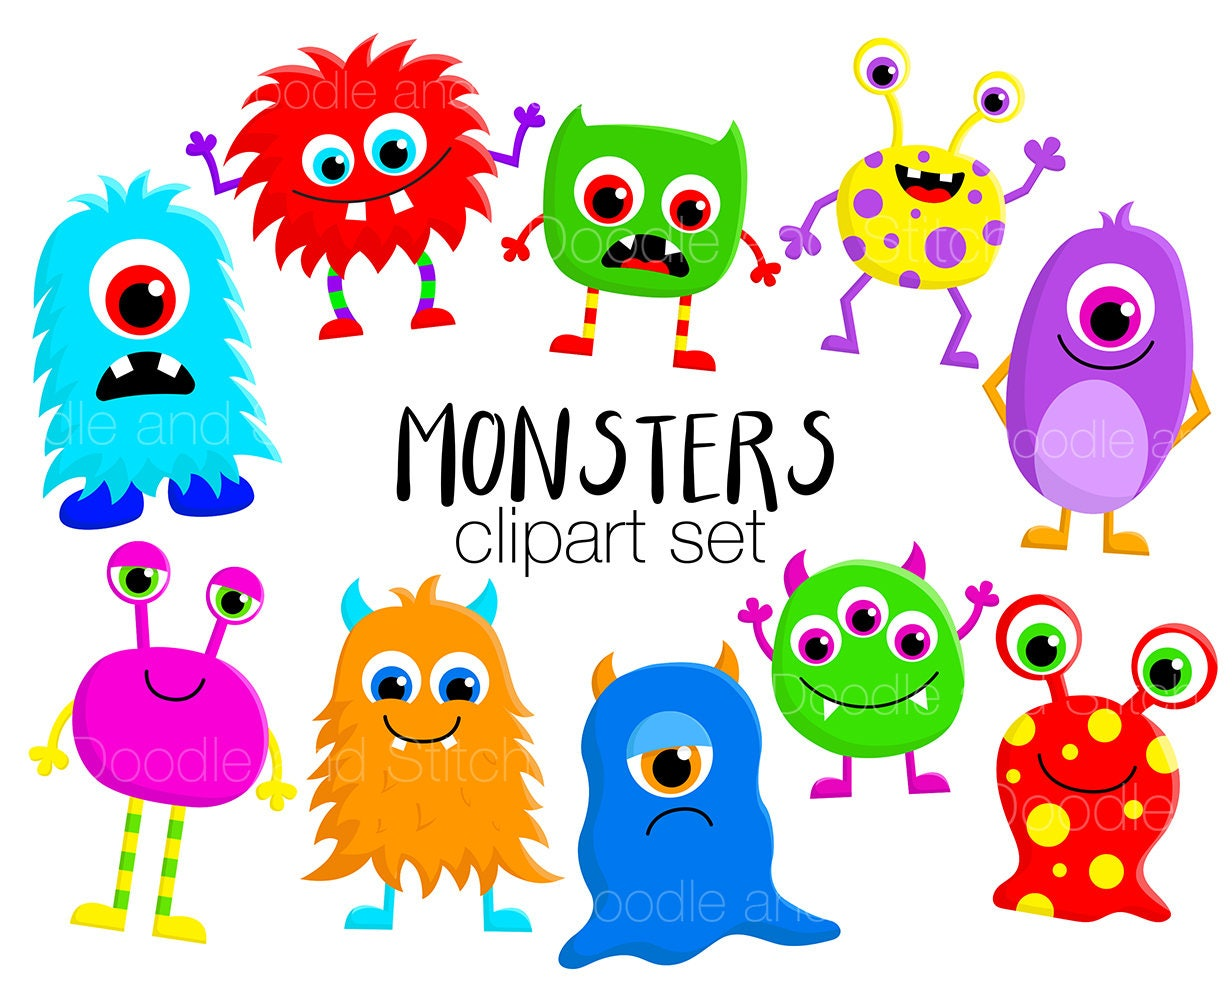 monster clipart monsters halloween clip birthday cartoon fun monstres monstre 570xn backgrounds illustrations jeu designs bonitos vector svg mignons monstruos